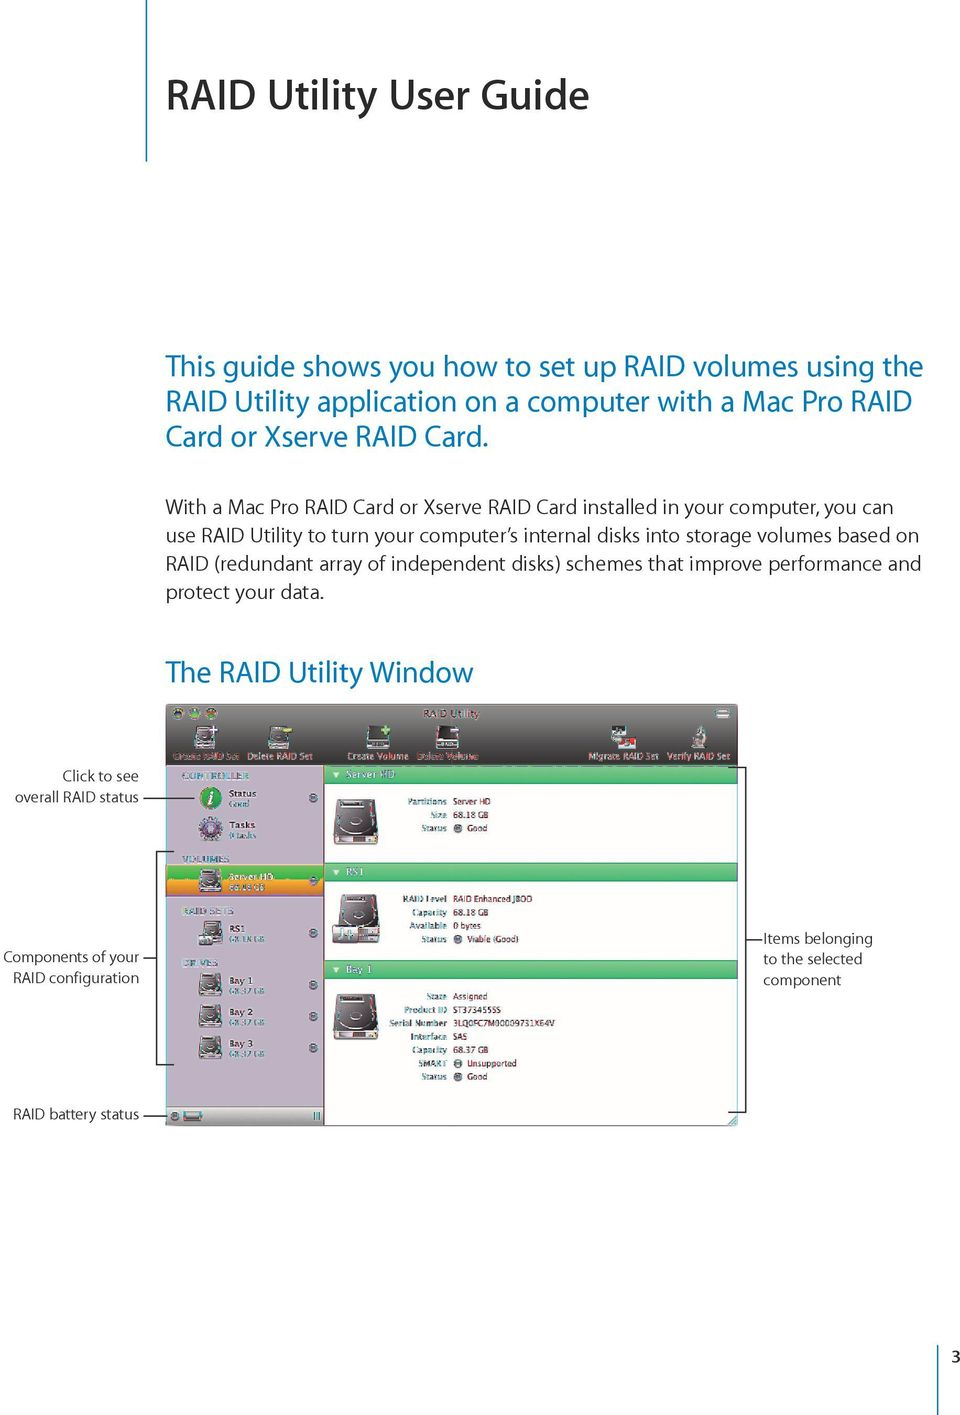 With a Mac Pro RAID Card or Xserve RAID Card installed in your computer, you can use RAID Utility to turn your computer s internal disks into